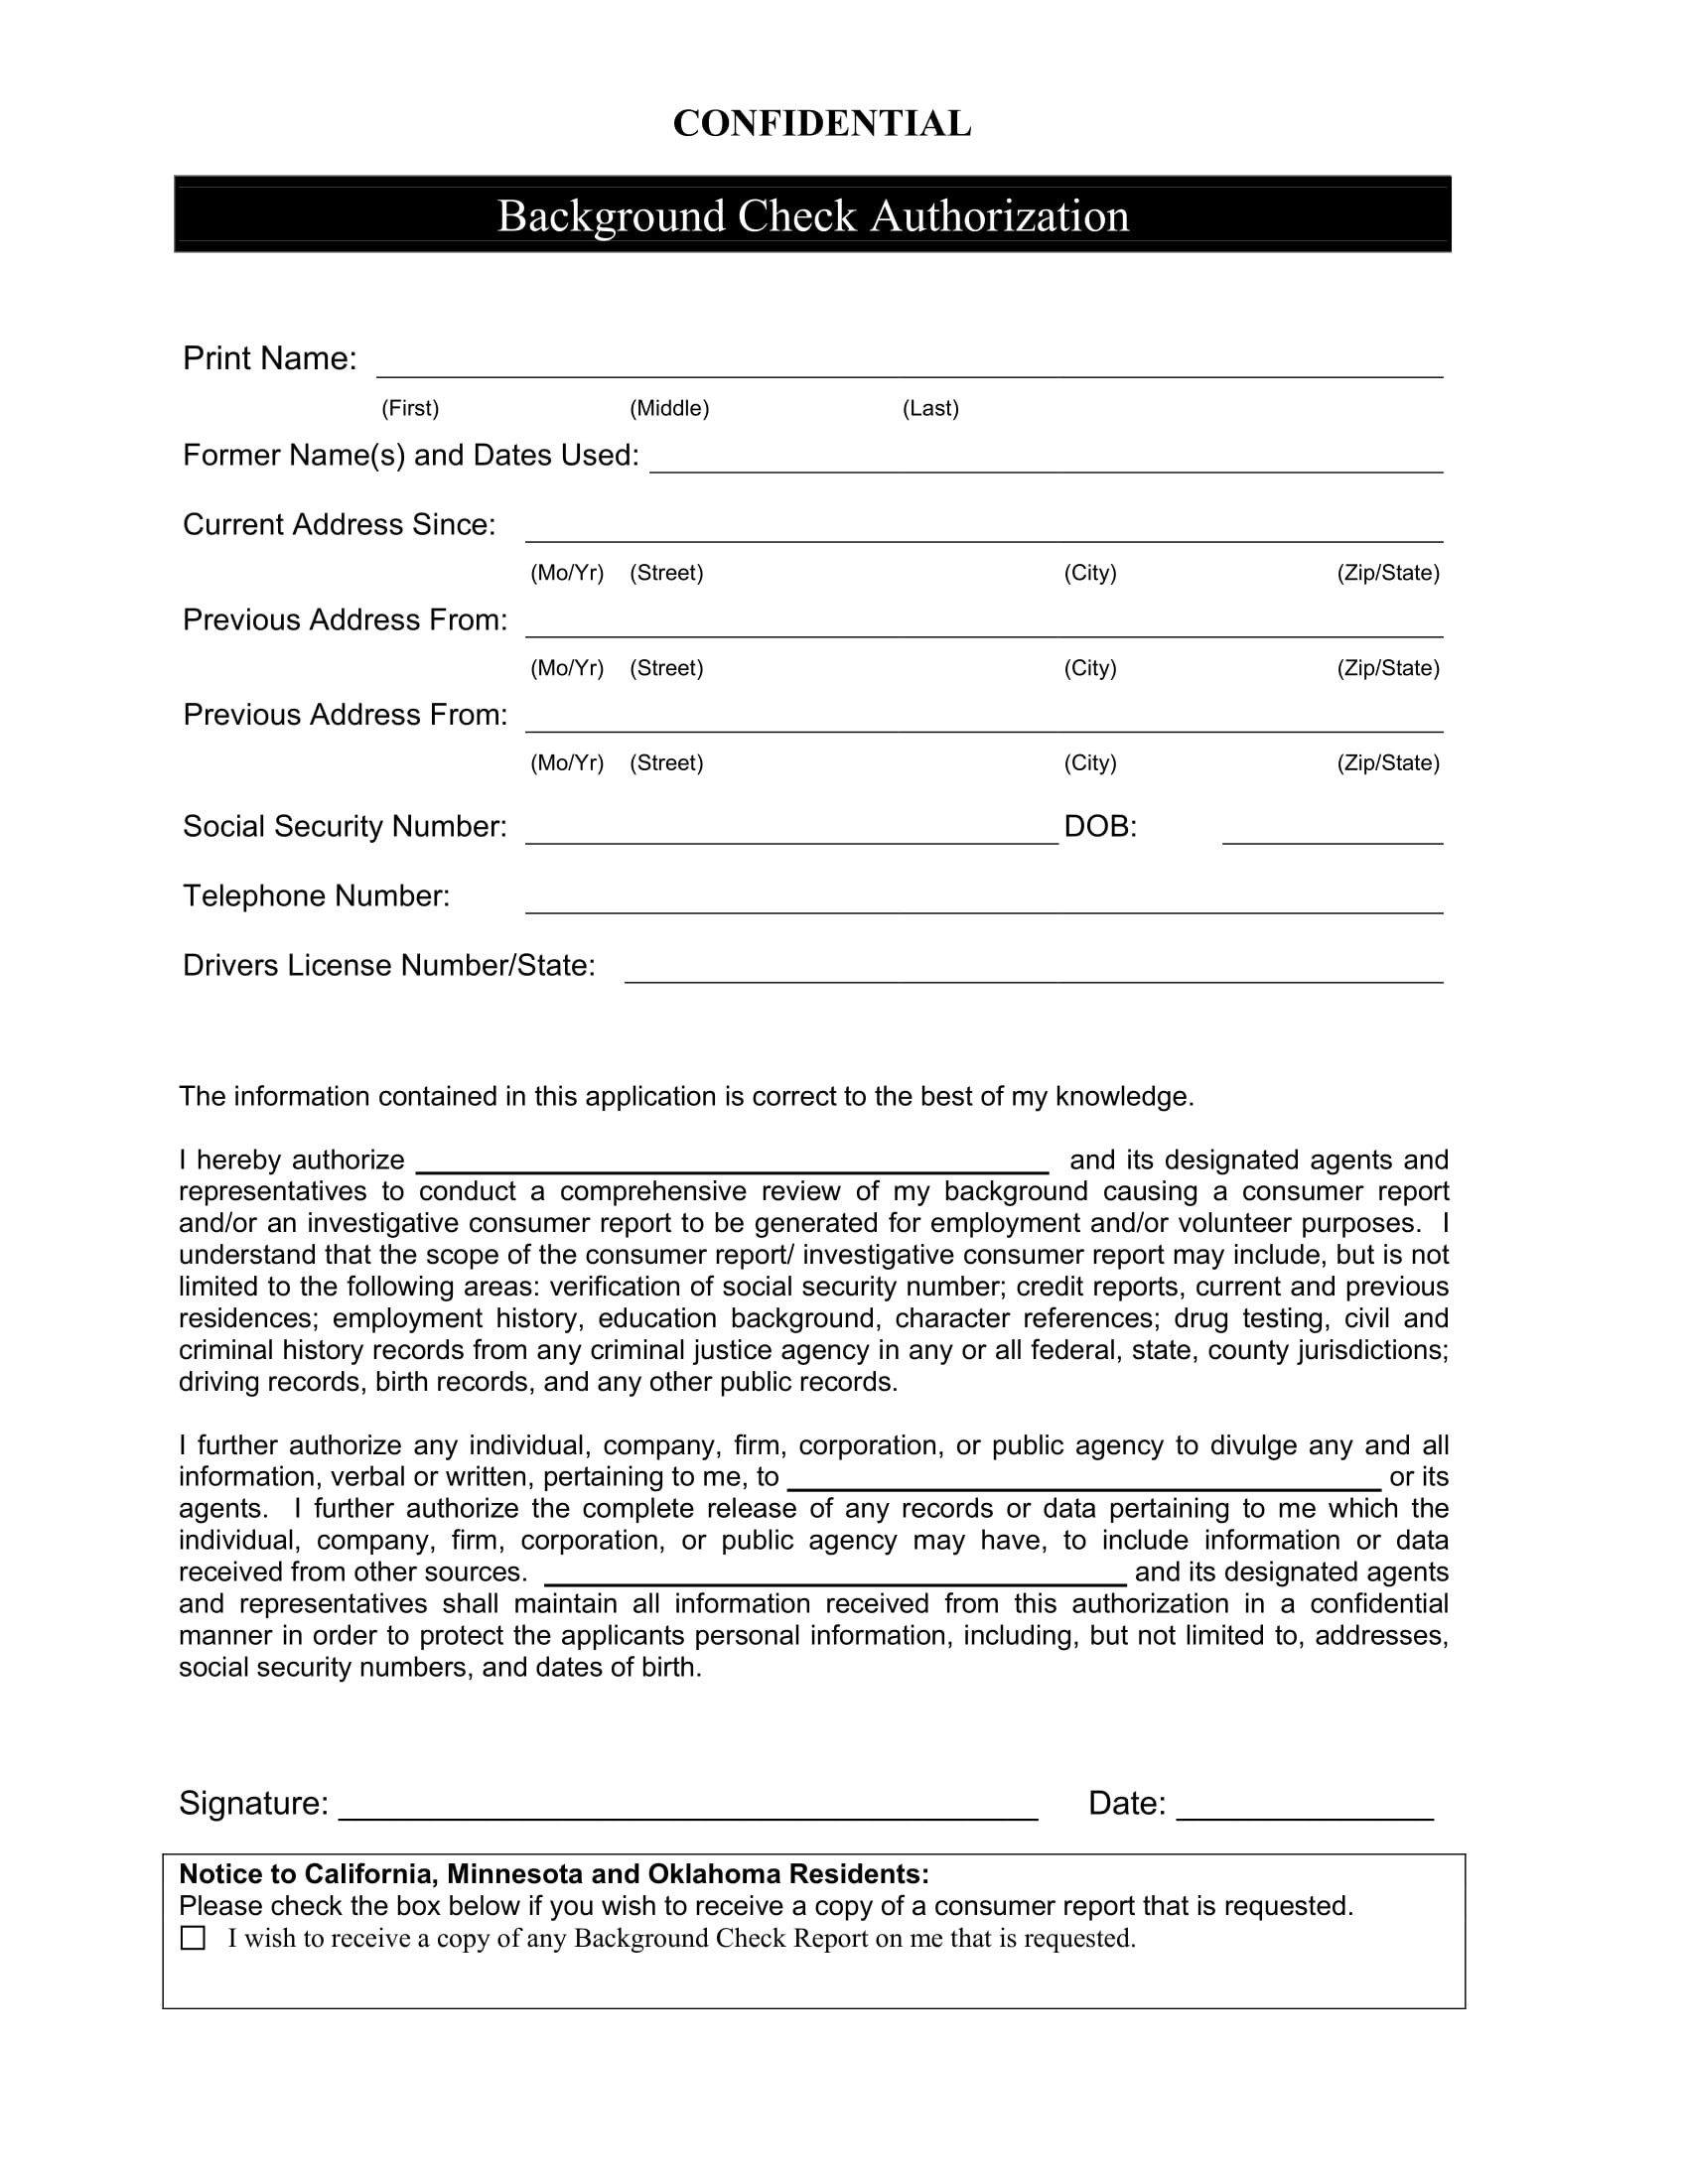 confidential background check authorization form